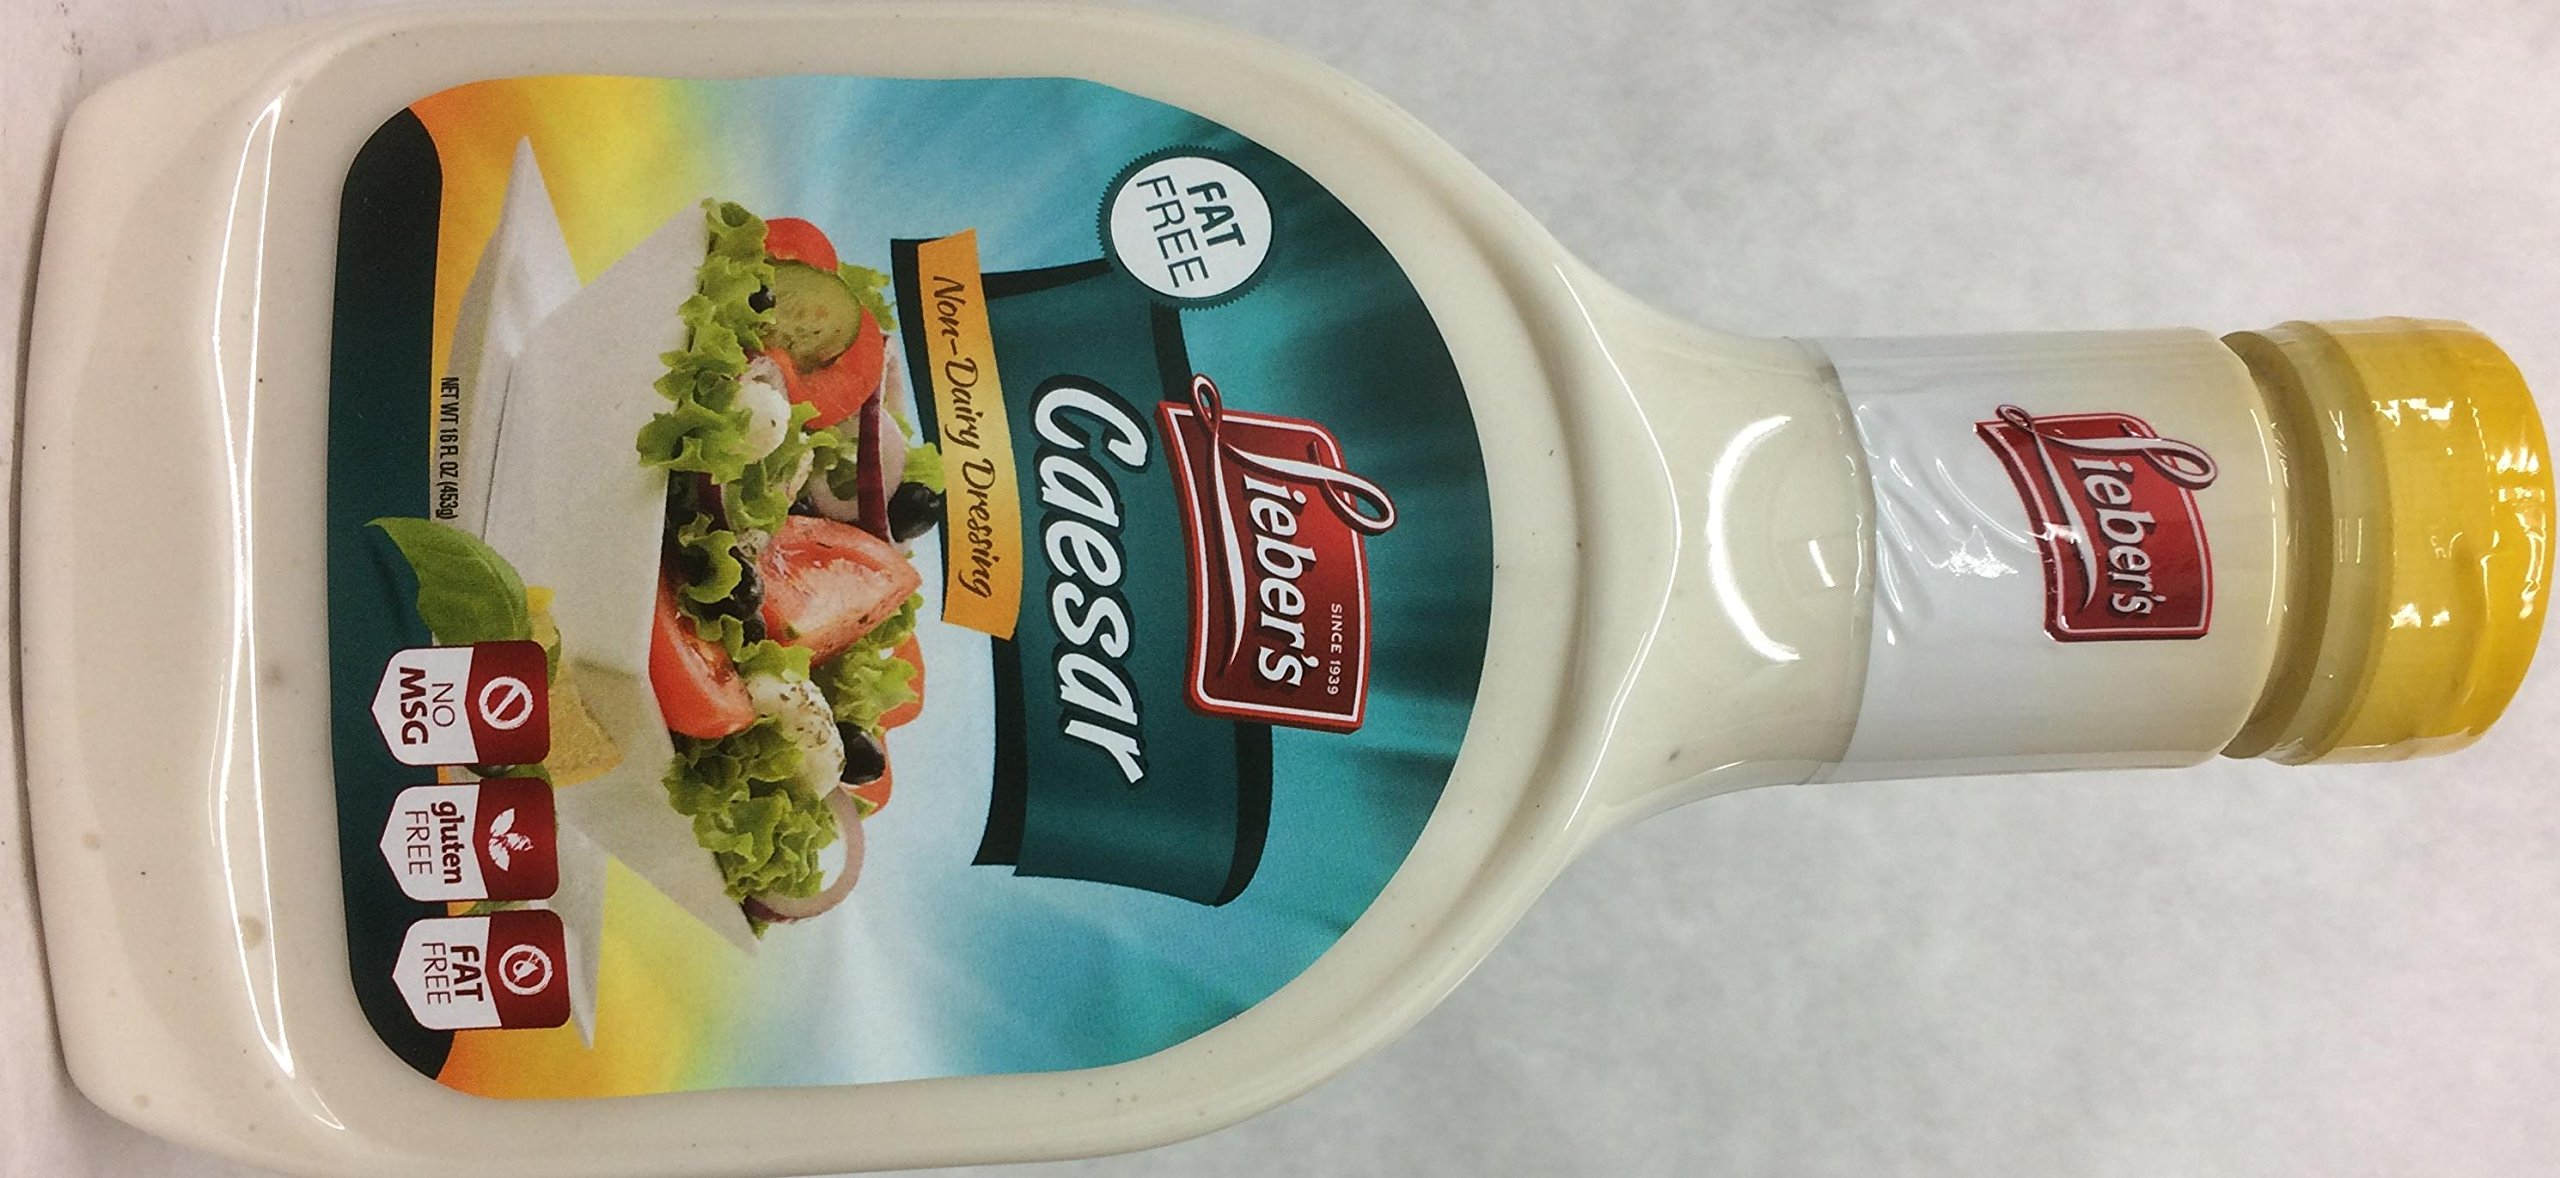 Lieber's Caesar Non-dairy Dressing Kosher For Passover 16 Oz. Pack Of 6.